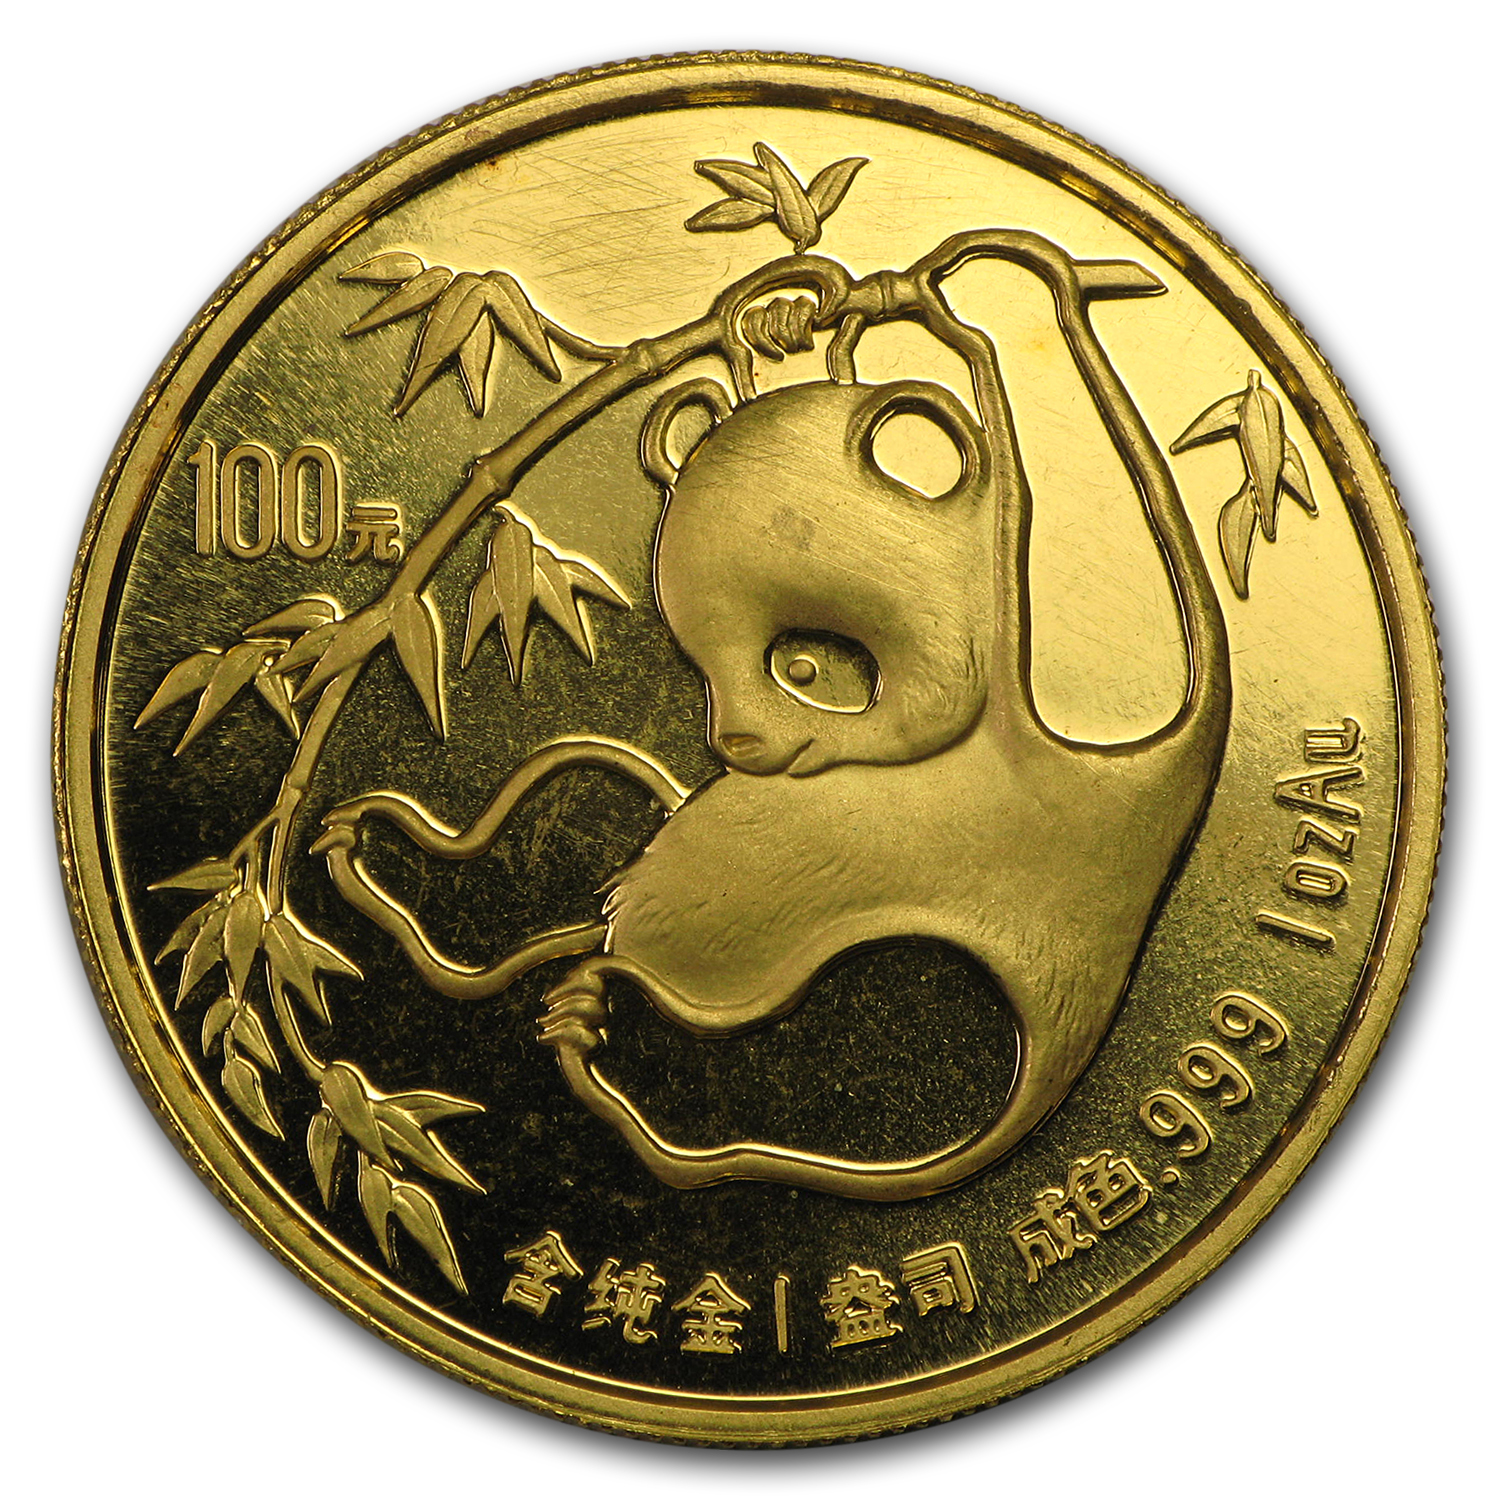 1985 China 1 oz Gold Panda BU (Not Sealed)